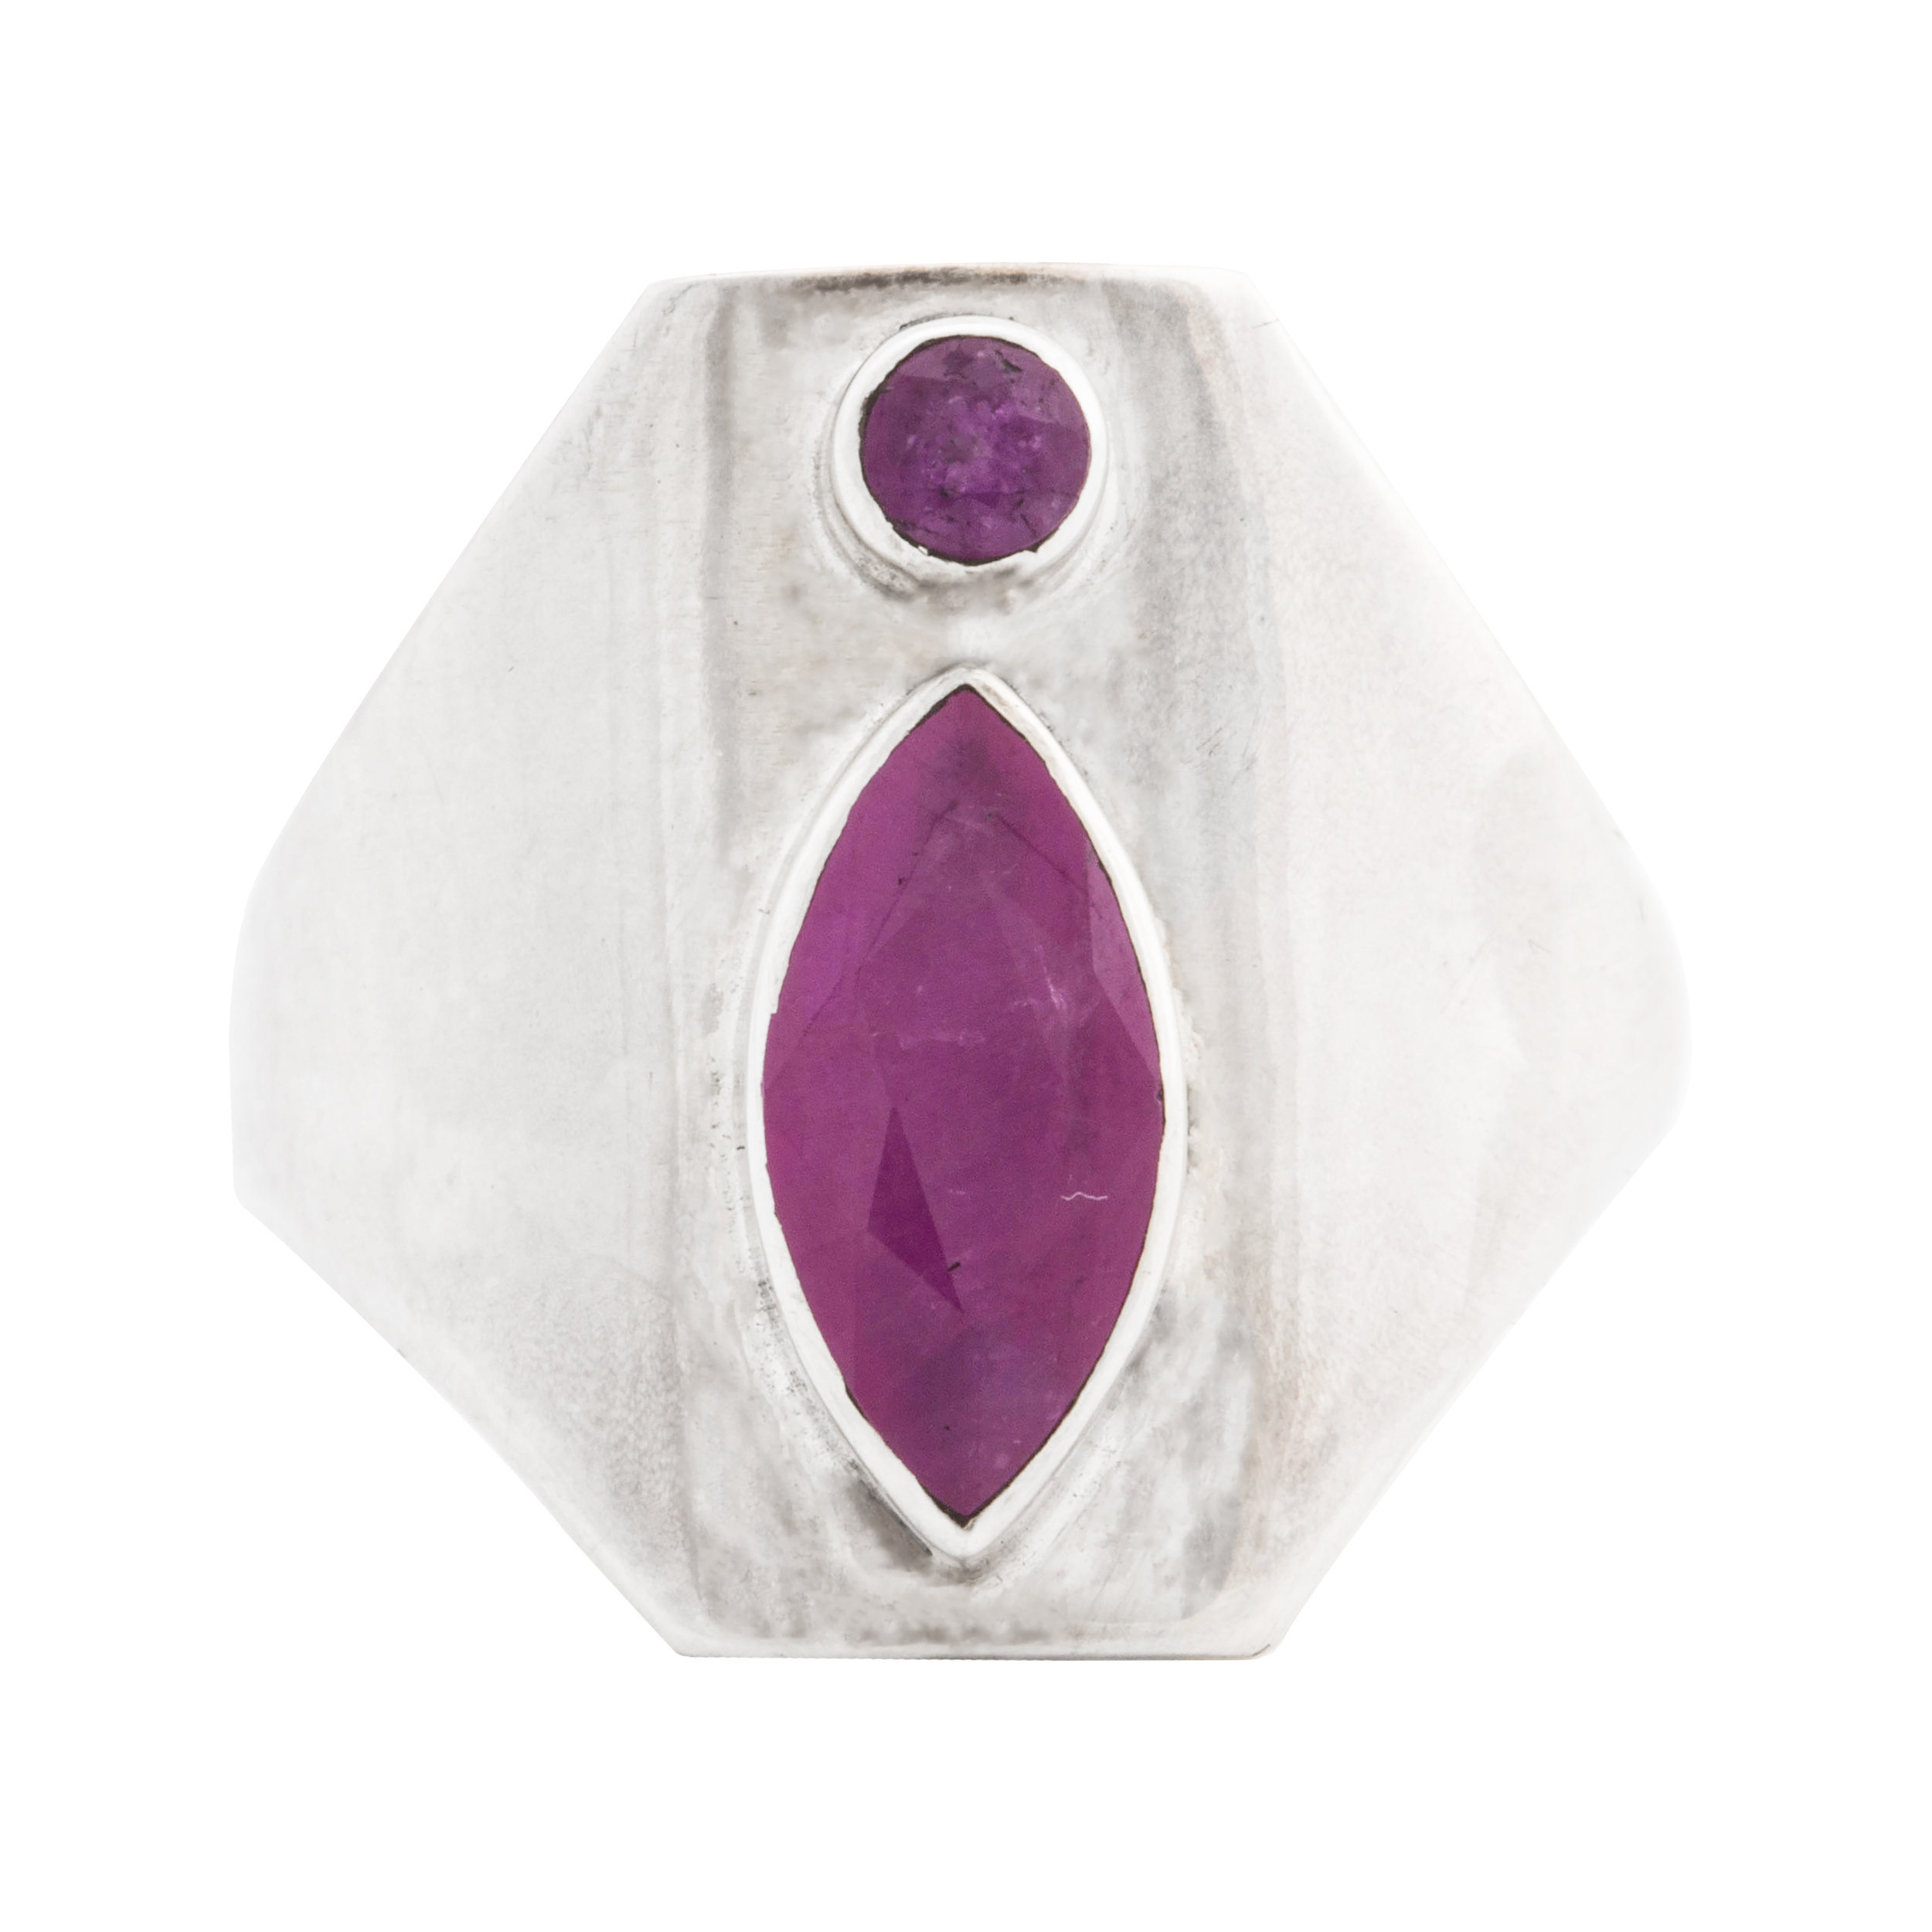 EYESEEi. YONi RING in recycled Sterling silver and 2 pink ruby semi-precious stones.  Price: 1800 sek. Photo: Naomi Pongolini